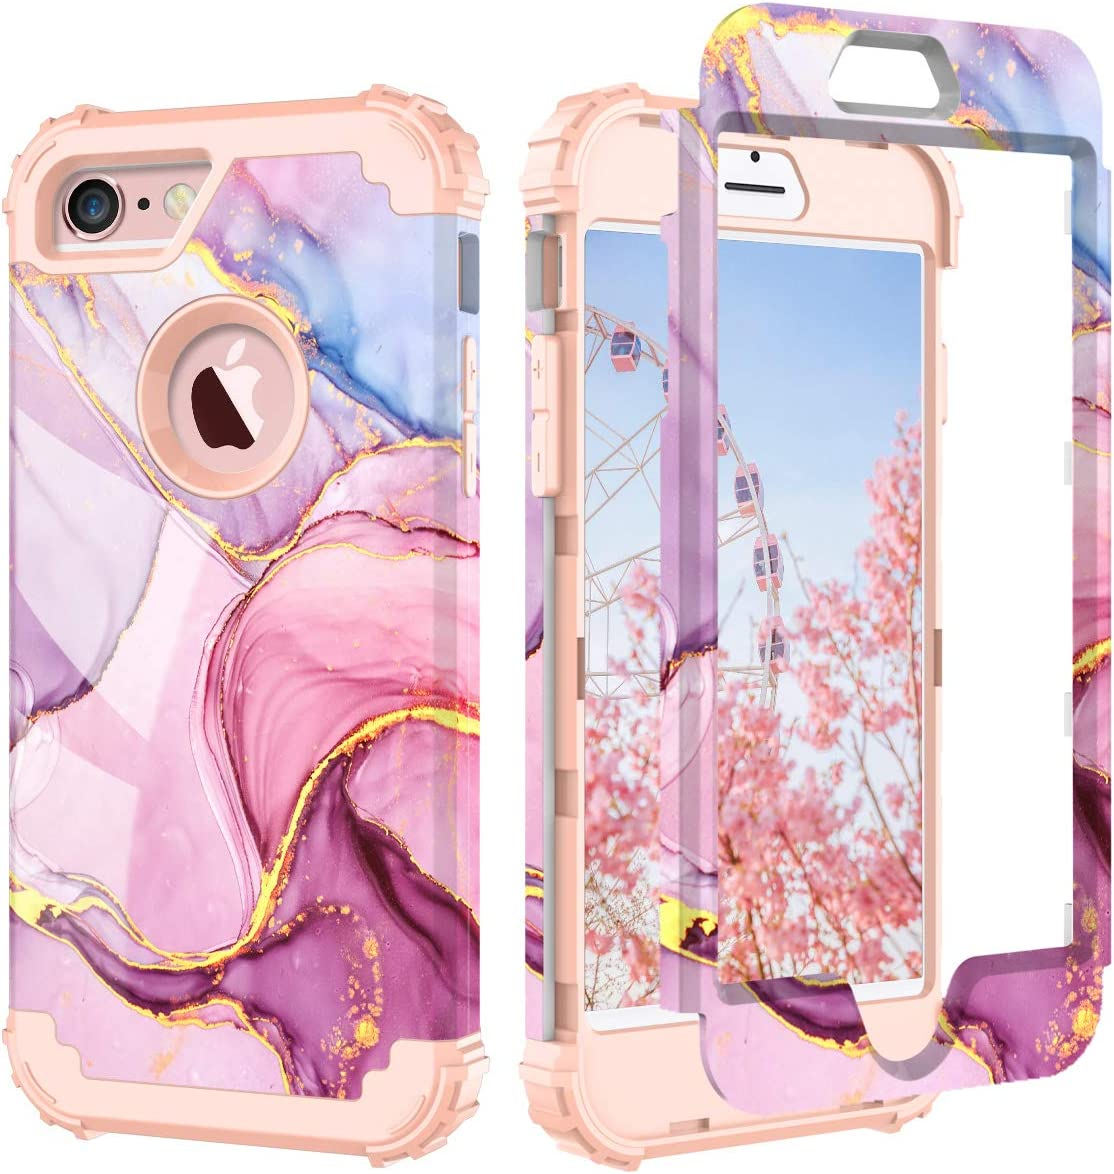 PIXIU iPhone 6 6s case,Three Layer Heavy Duty Shockproof Protective Soft Silicone Hard Plastic Bumper Sturdy Case Cover for iPhone 6 6s 4.7 inch Marble